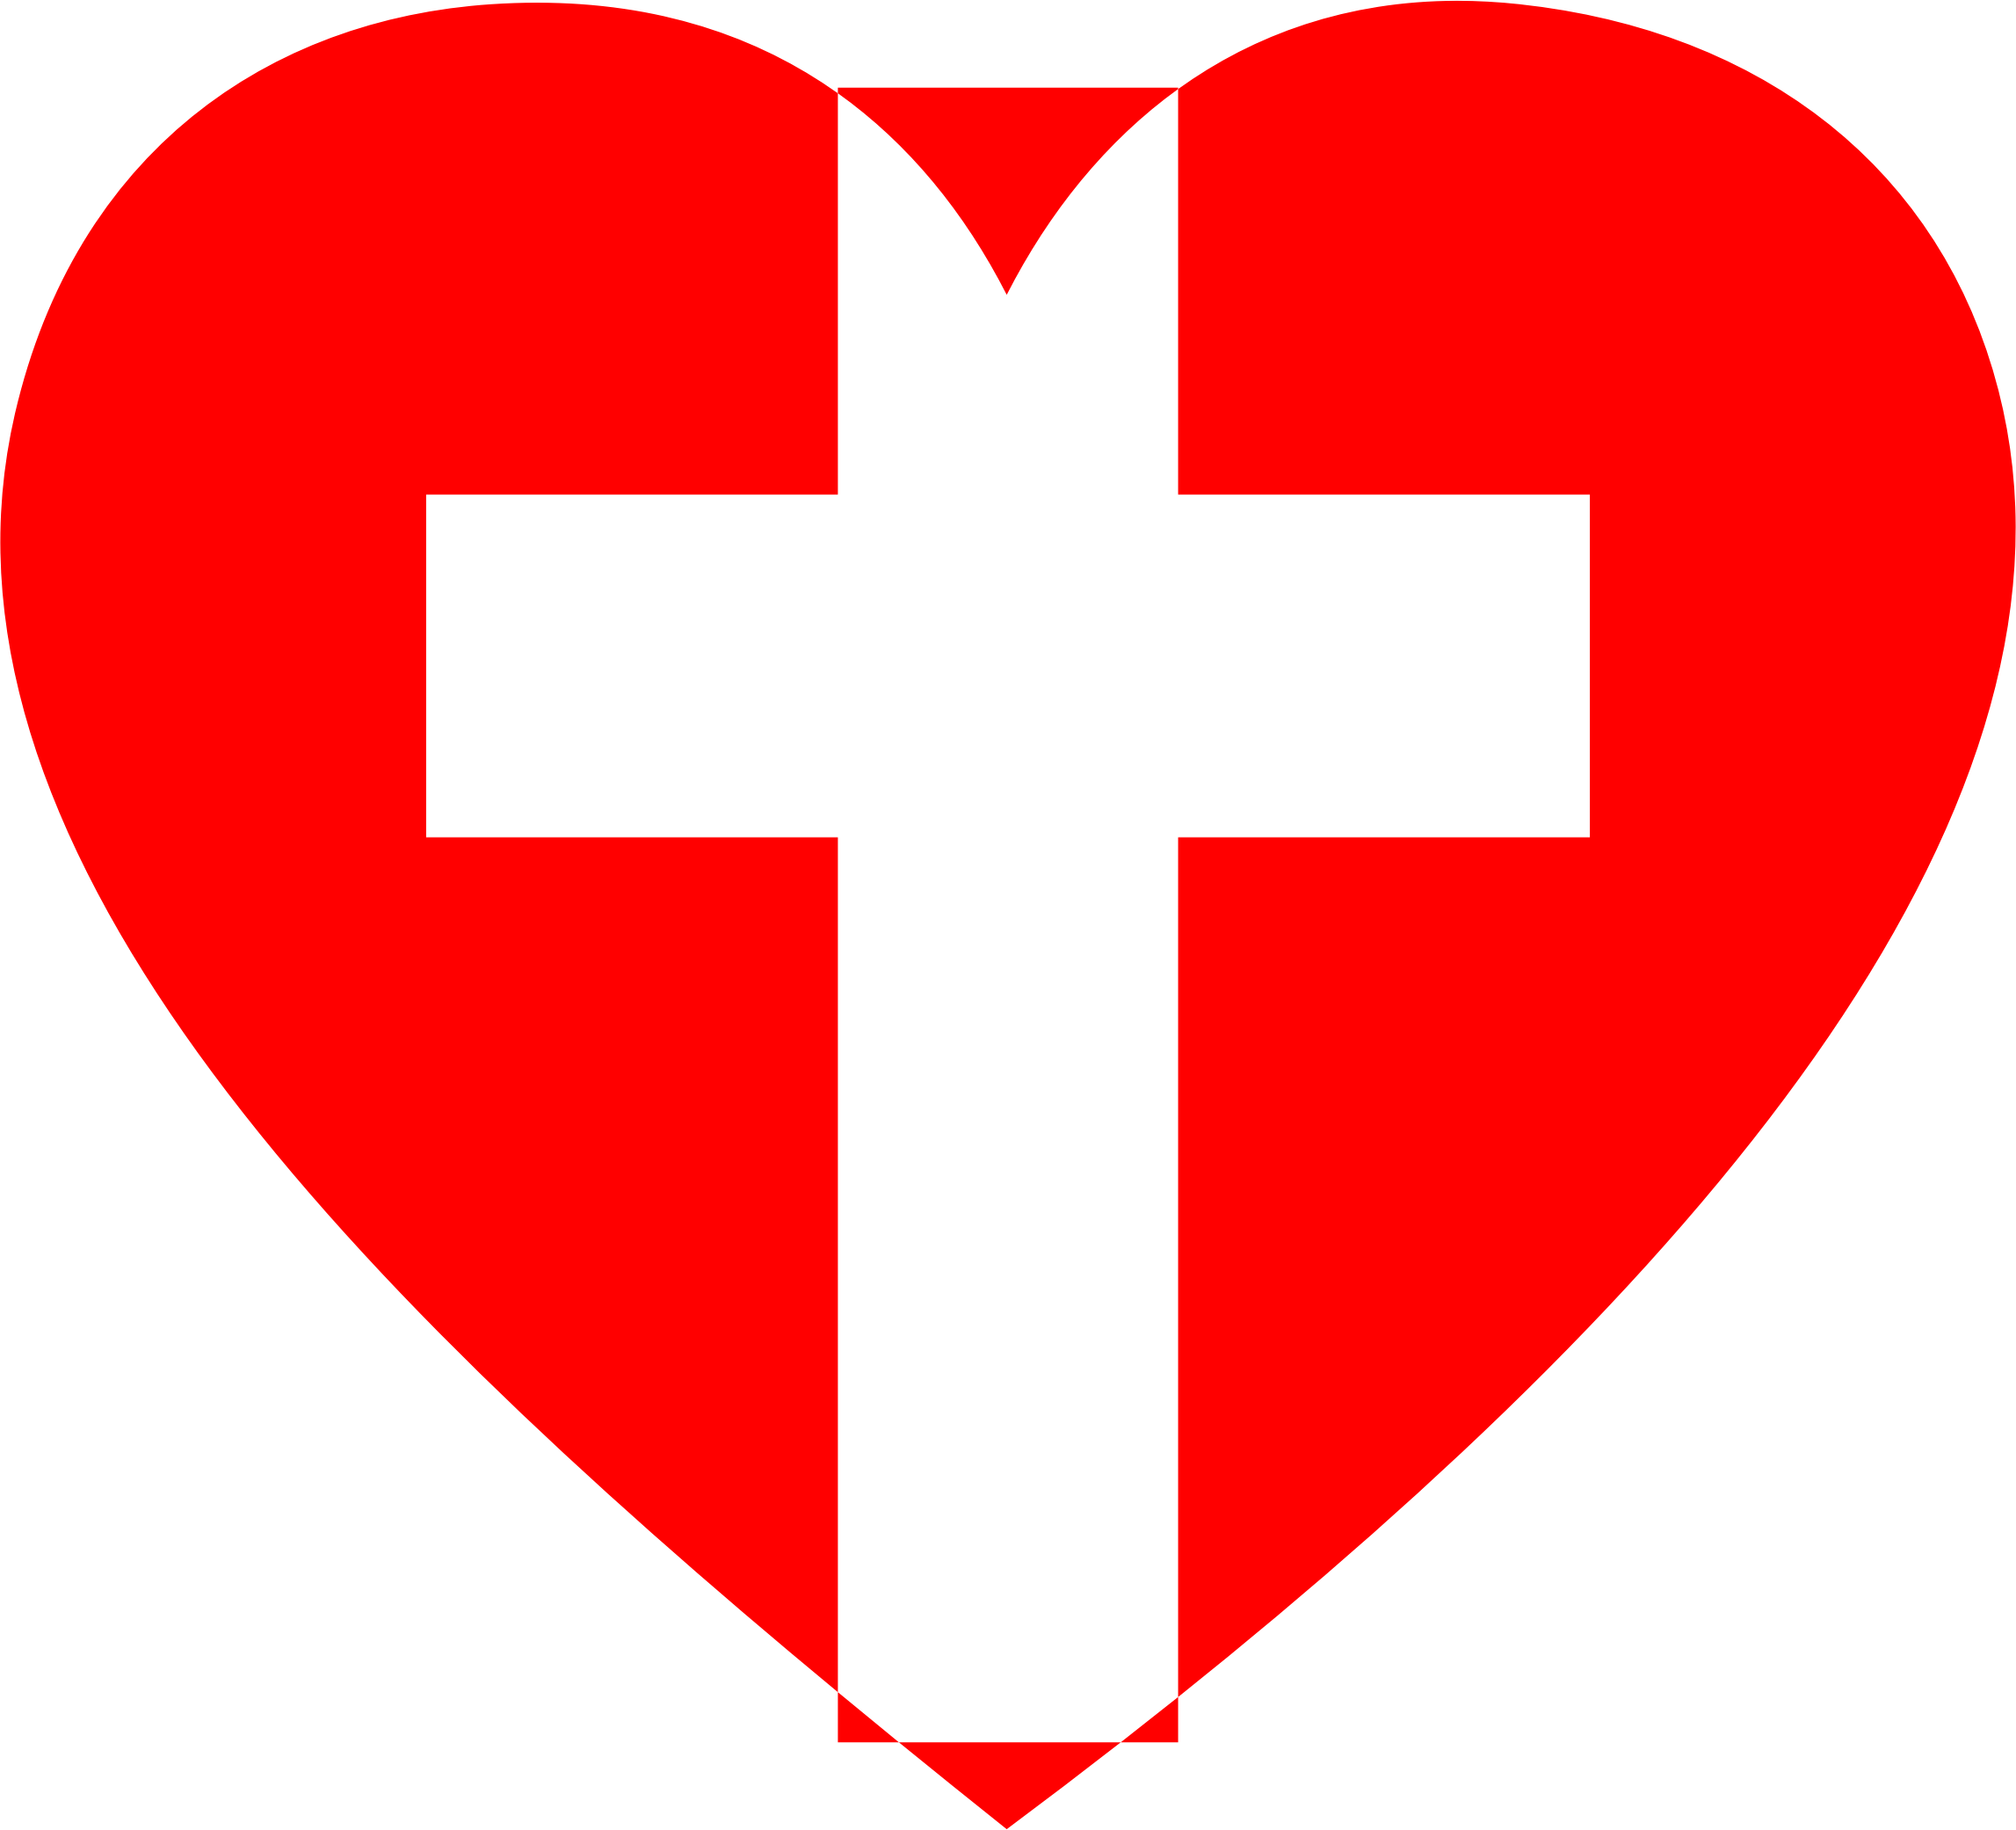 Outlined cross in heart clipart clip free stock Cross With Heart Clipart | Free download best Cross With ... clip free stock